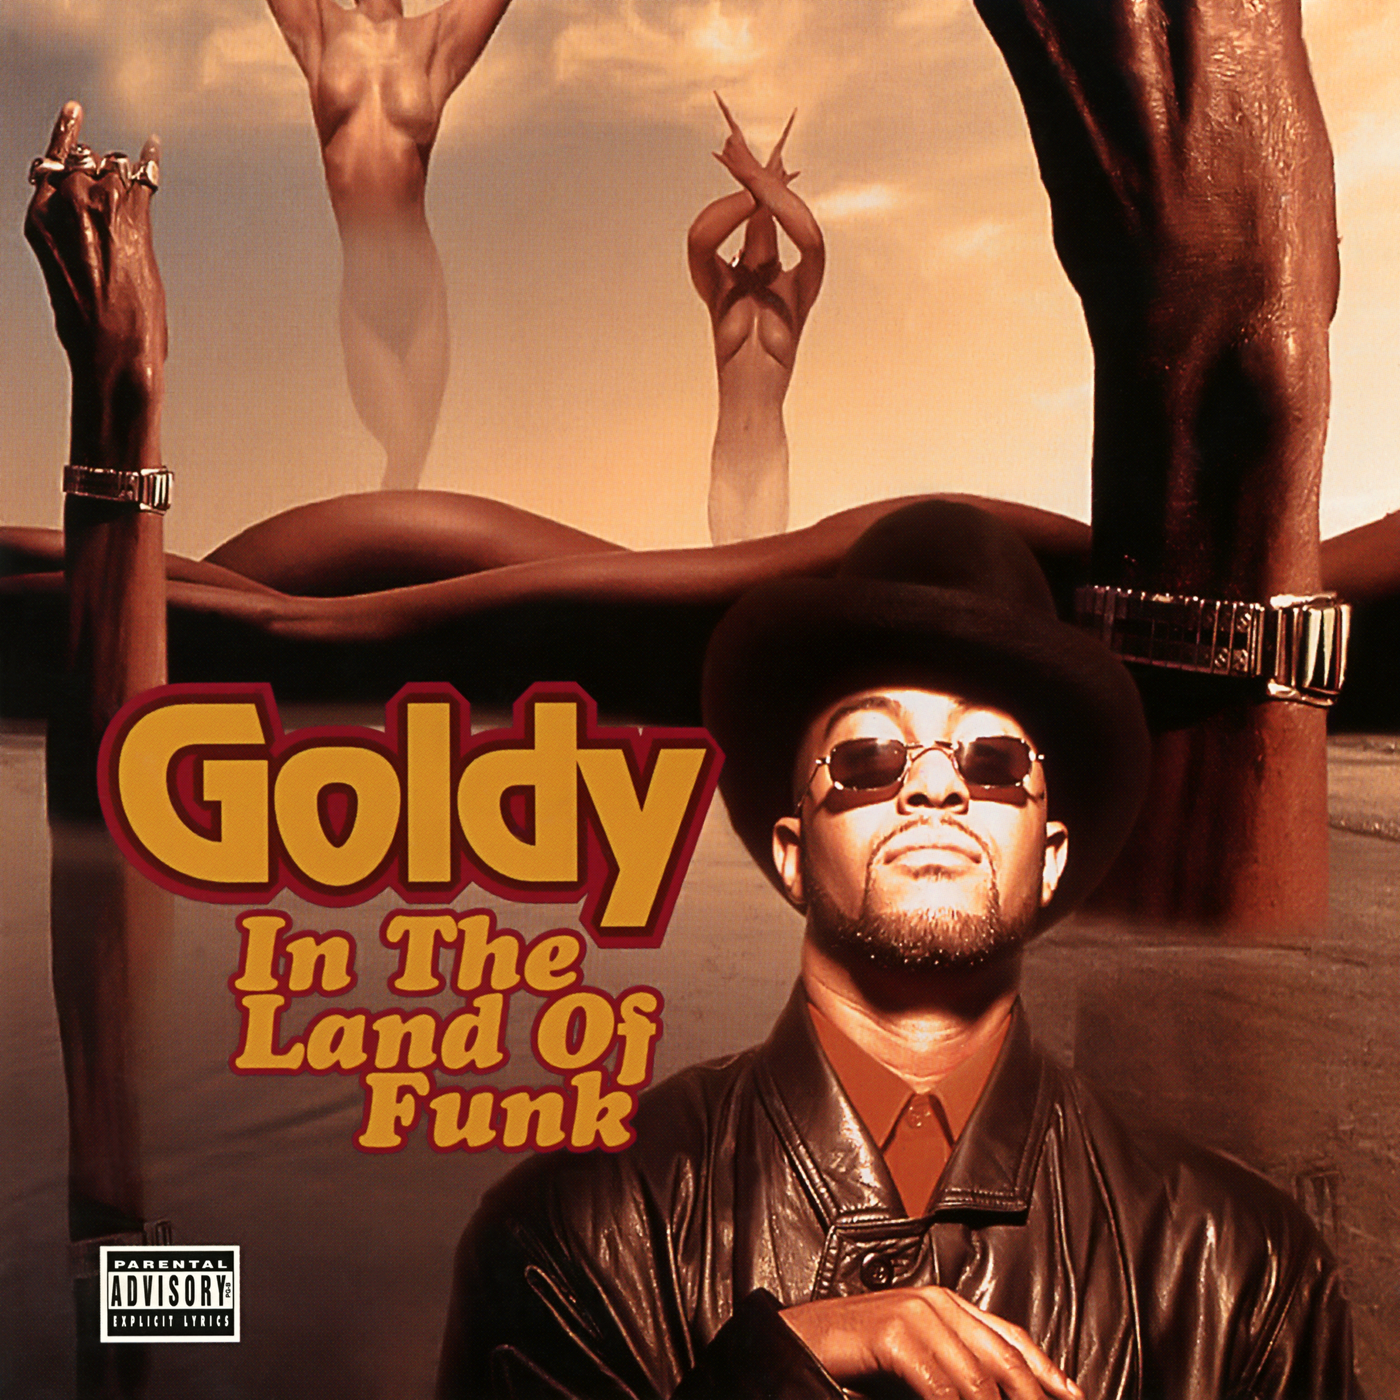 In the Land of Funk - Goldy